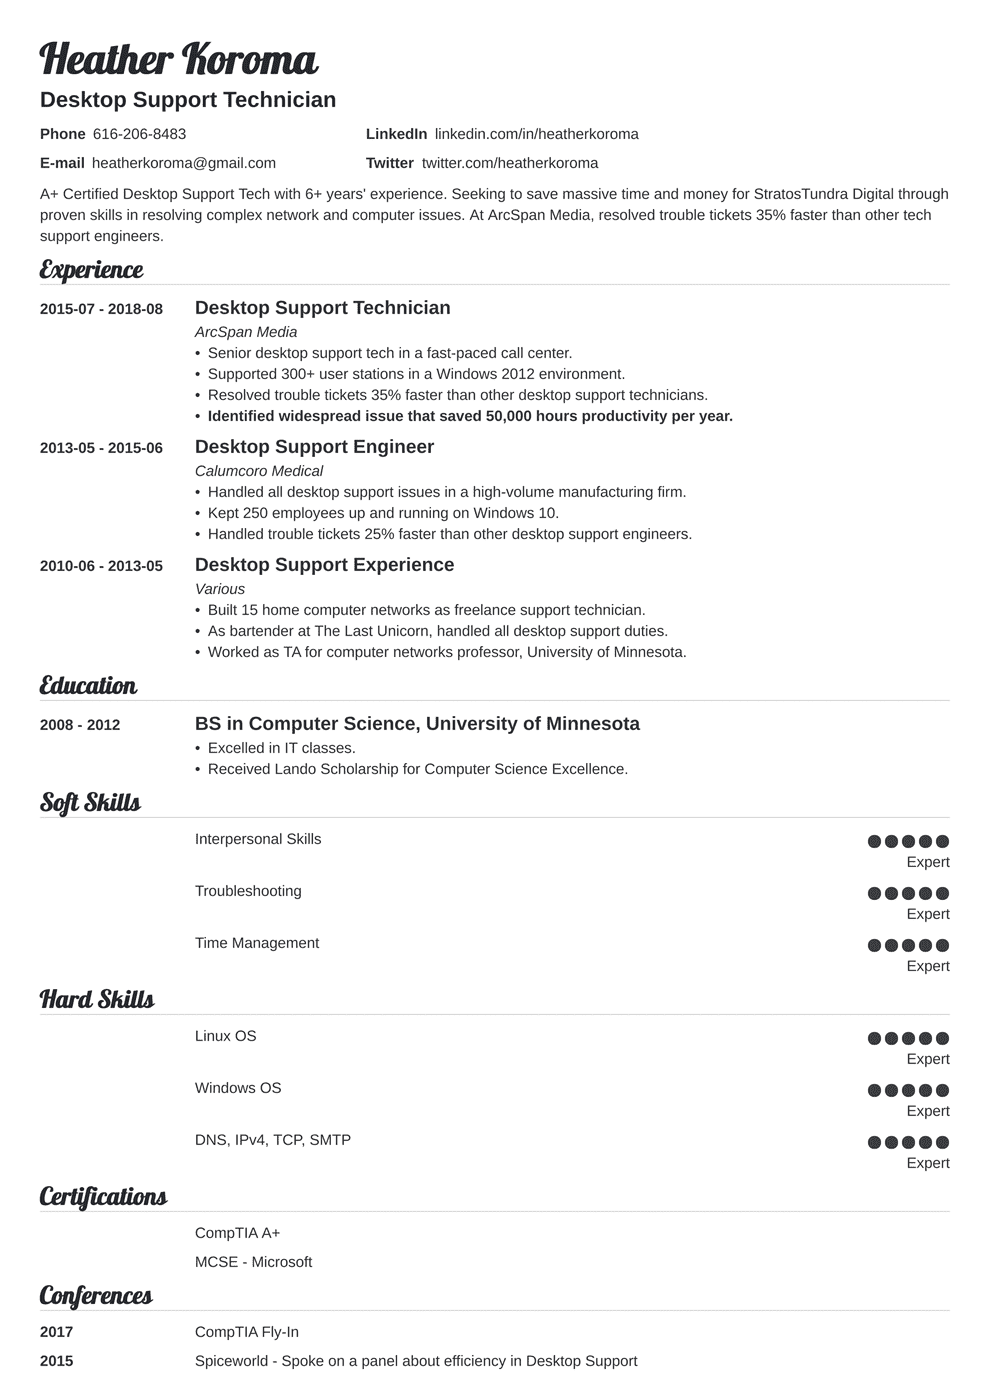 Bookkeeper Resume: Sample and Complete Guide [+20 Examples]